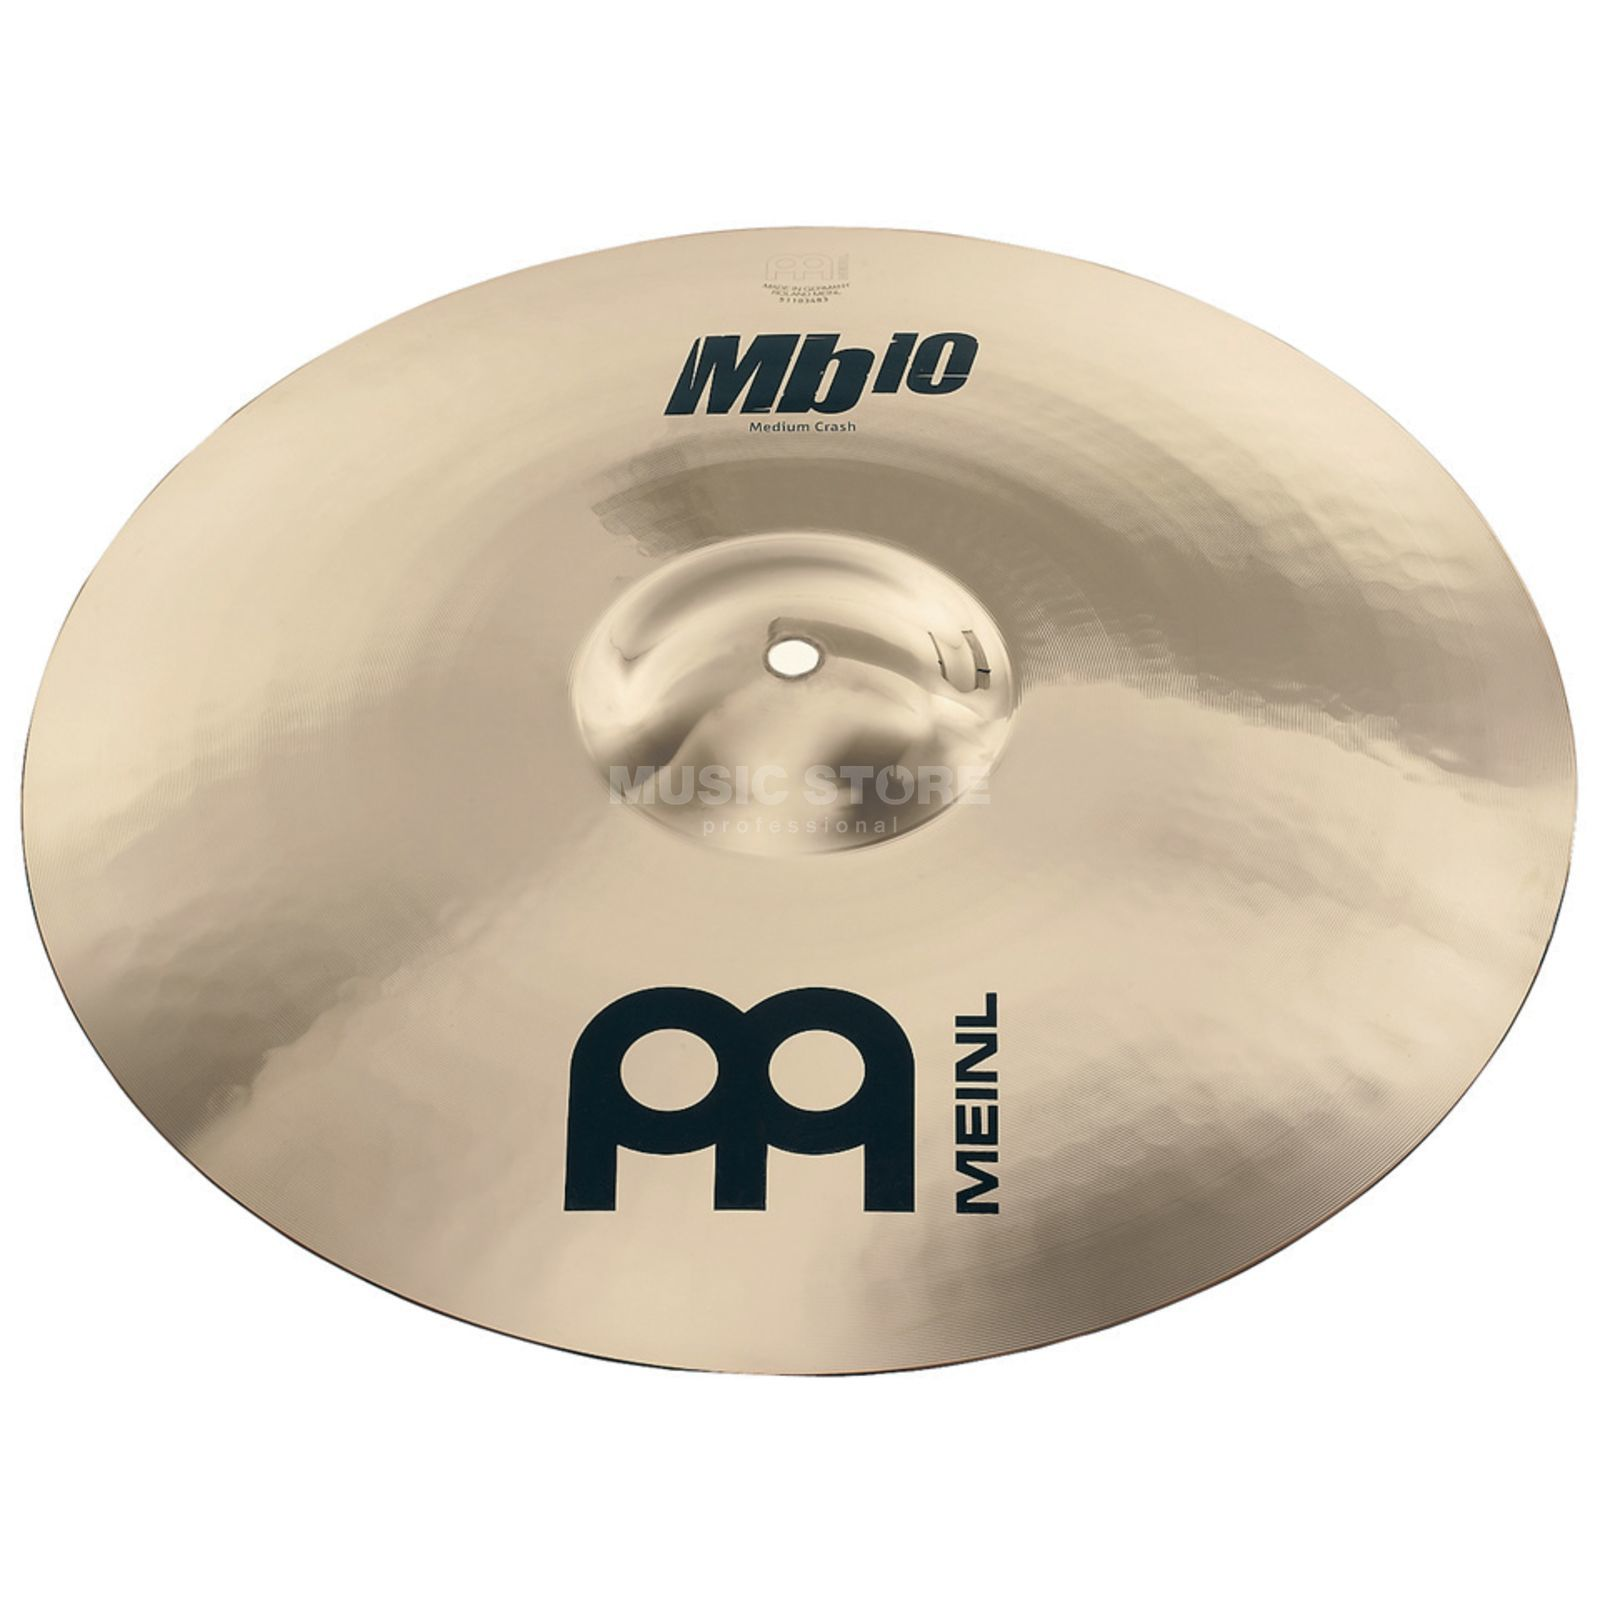 "Meinl MB10 Medium Crash 16"" MB10-16MC-B, Brilliant Finish Product Image"